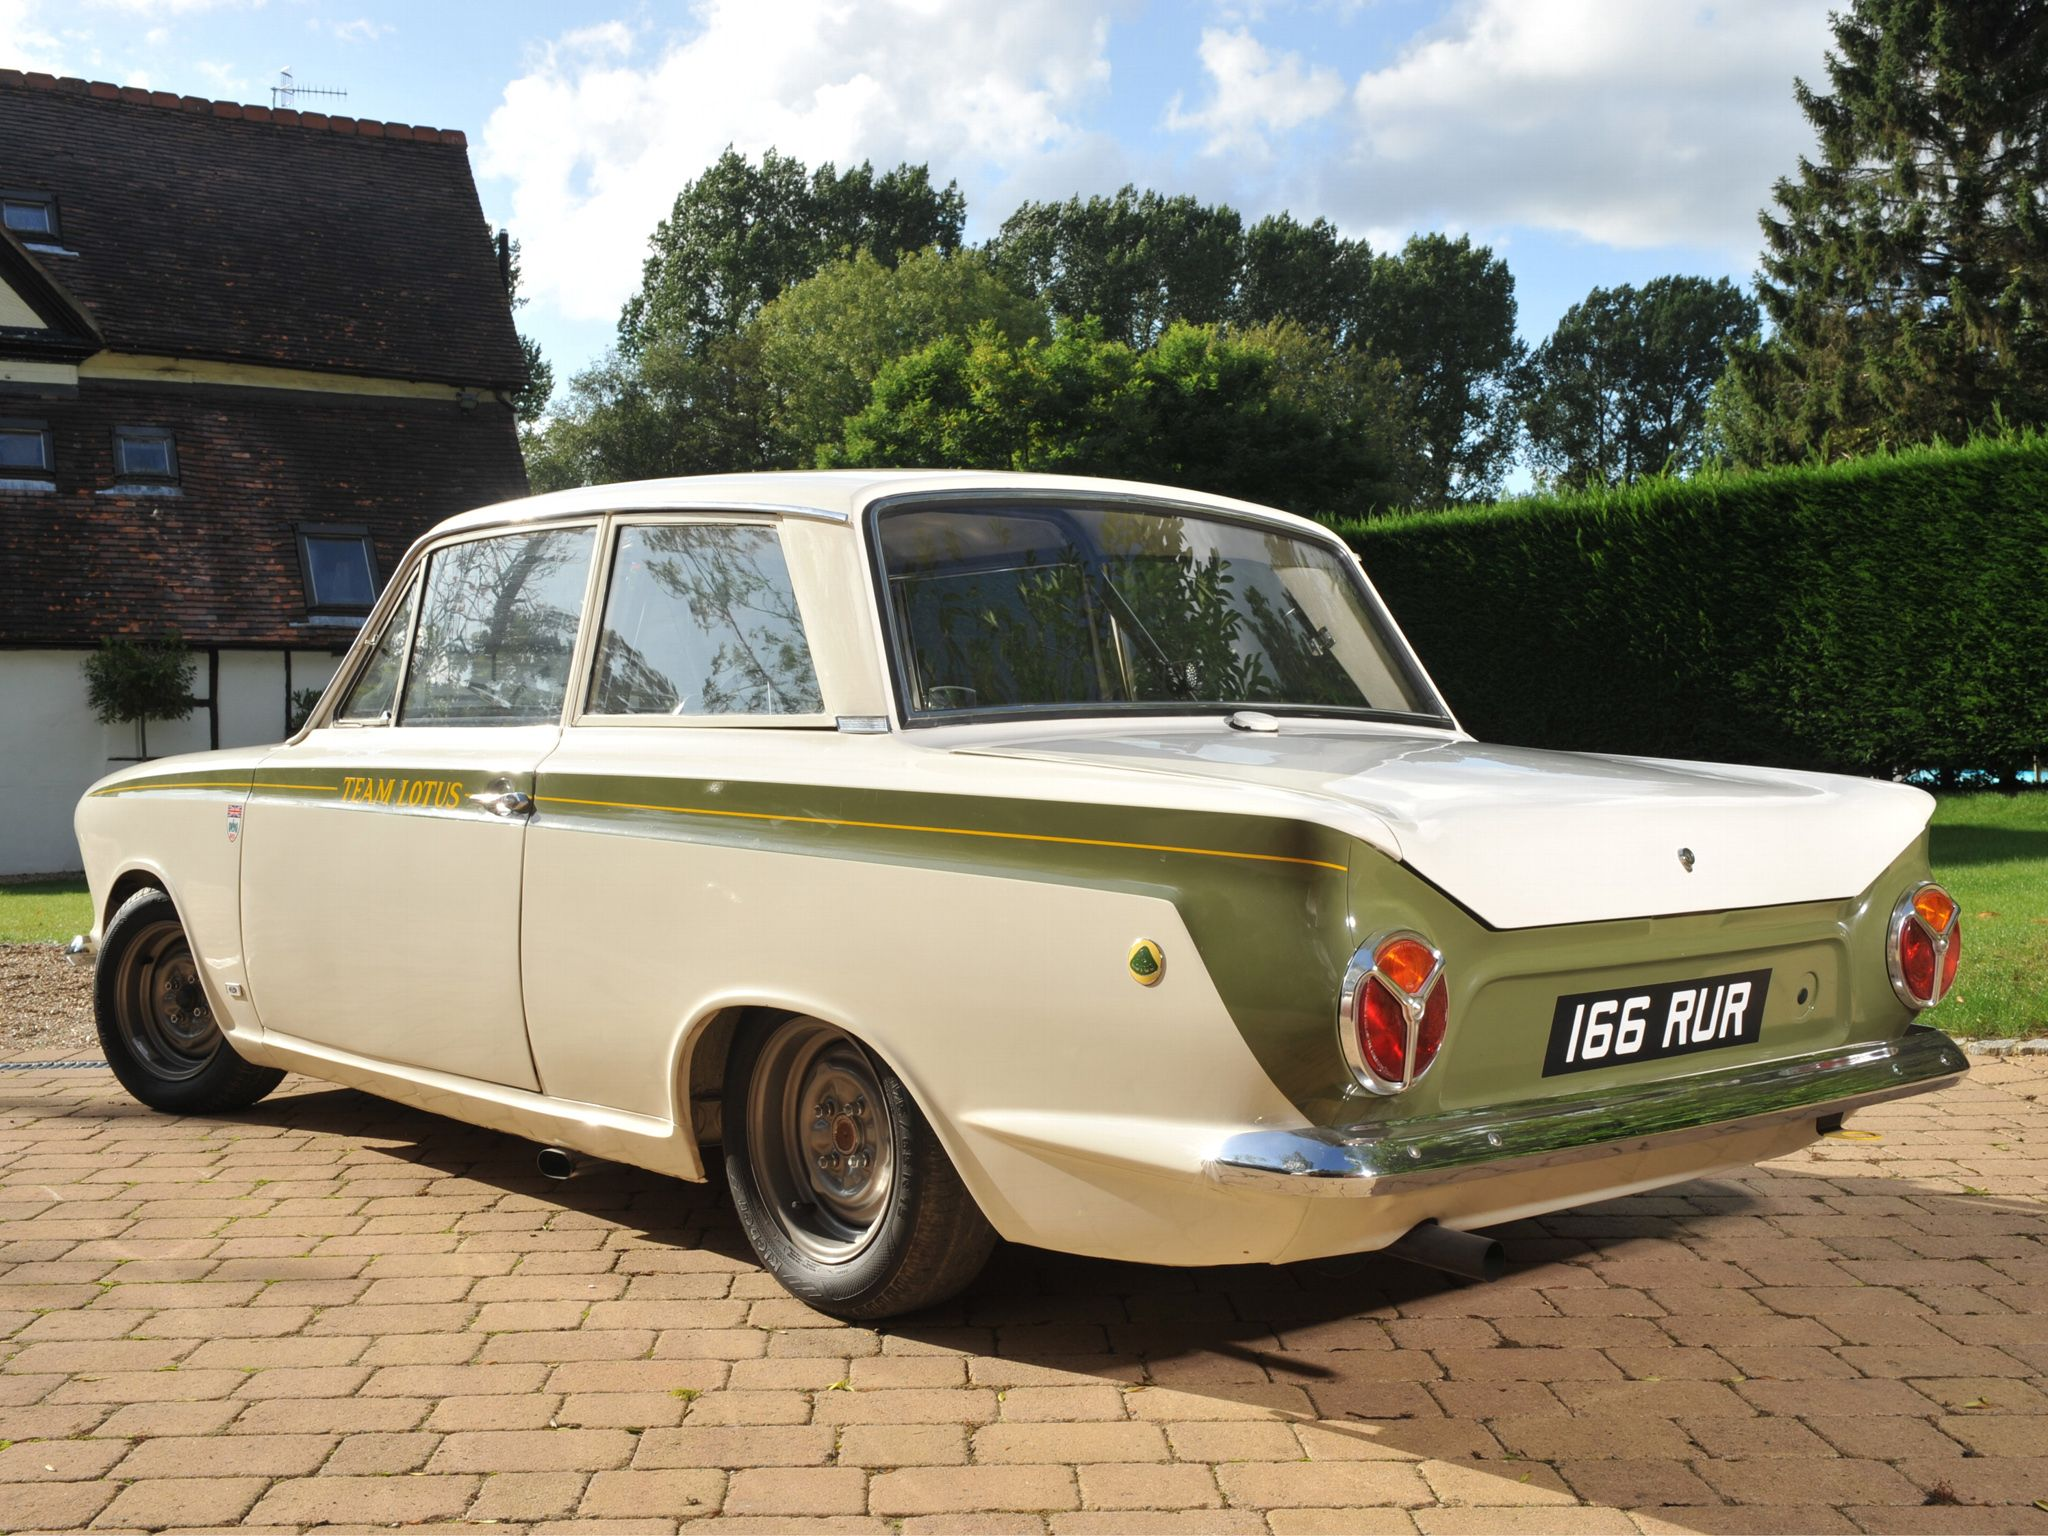 Lotus cortina my dad had one of these sad that he had to sell